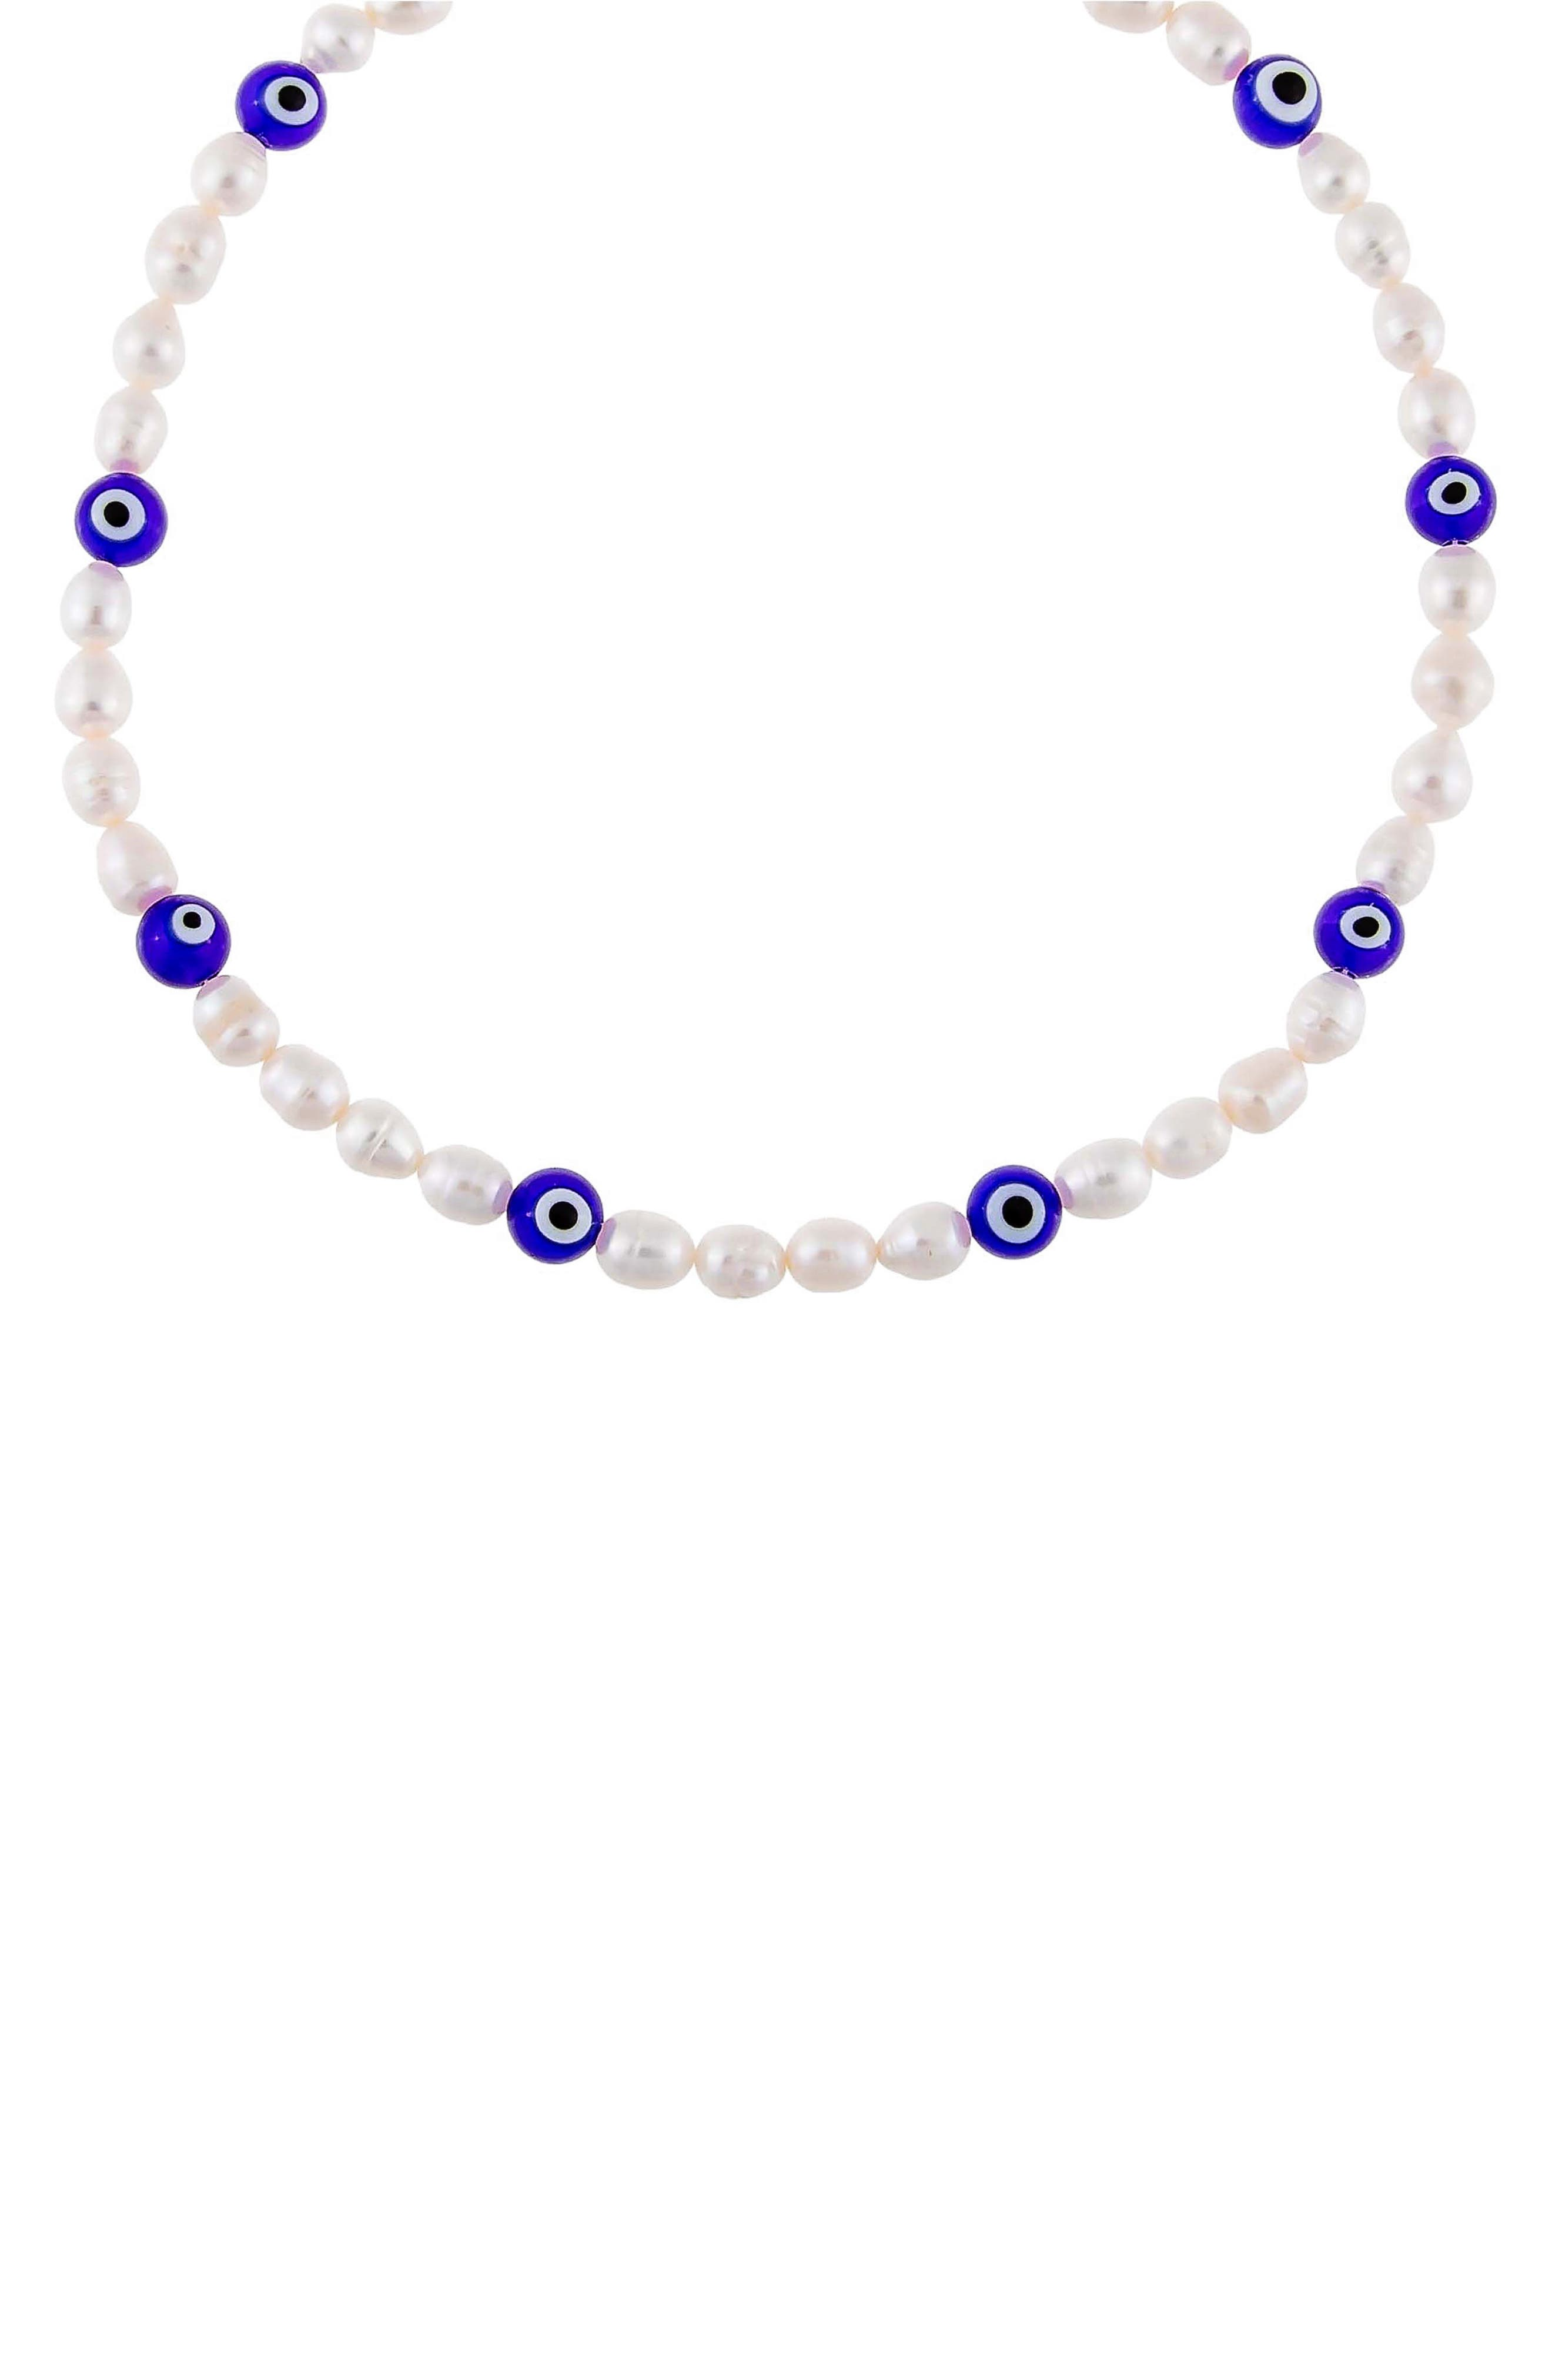 Women's Adina's Jewels Freshwater Pearl Beaded Necklace